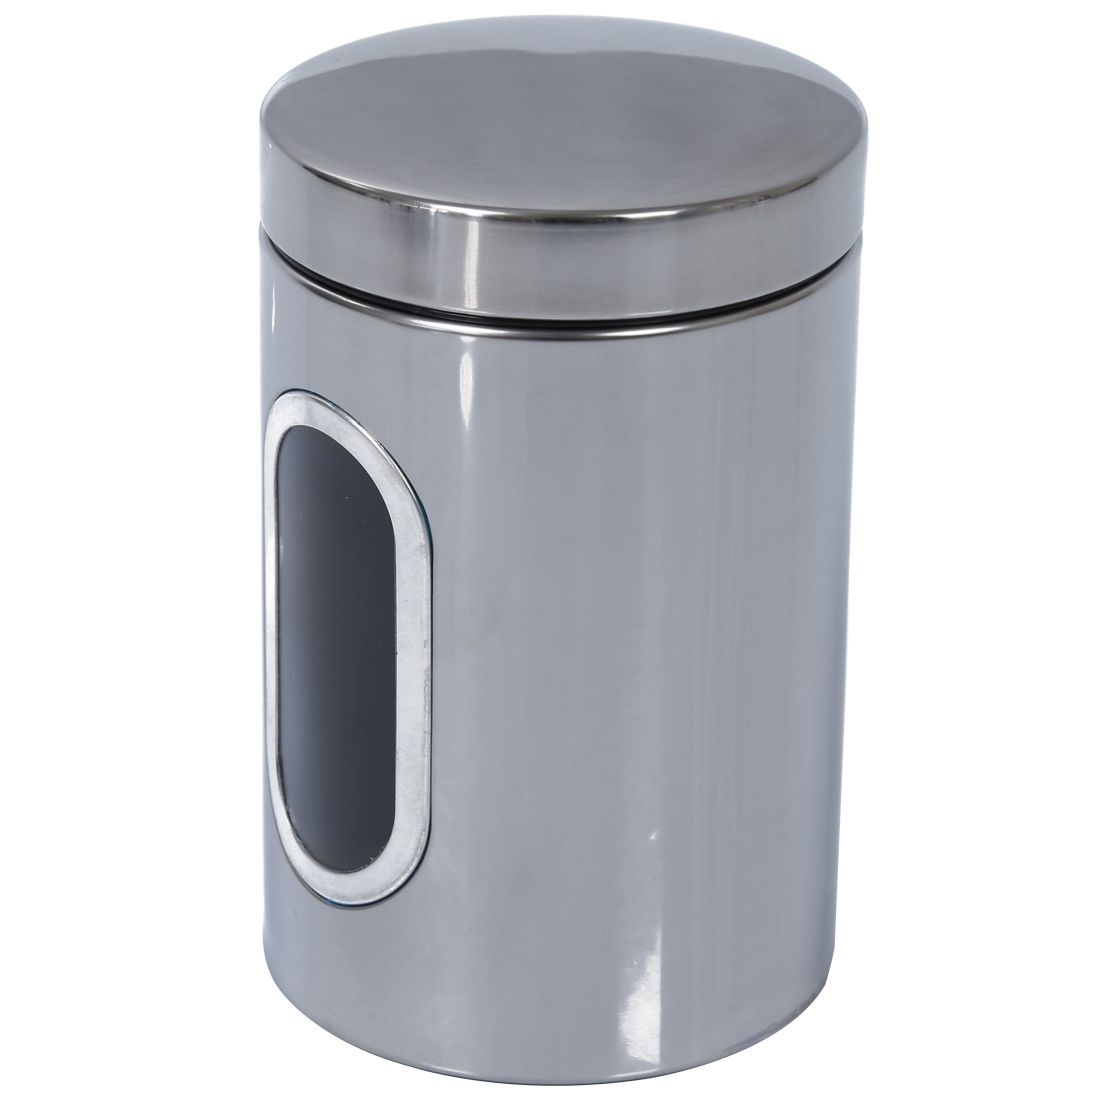 online get cheap stainless steel canister set aliexpress com 3pcs stainless steel window canister tea coffee sugar nuts jar storage set silver